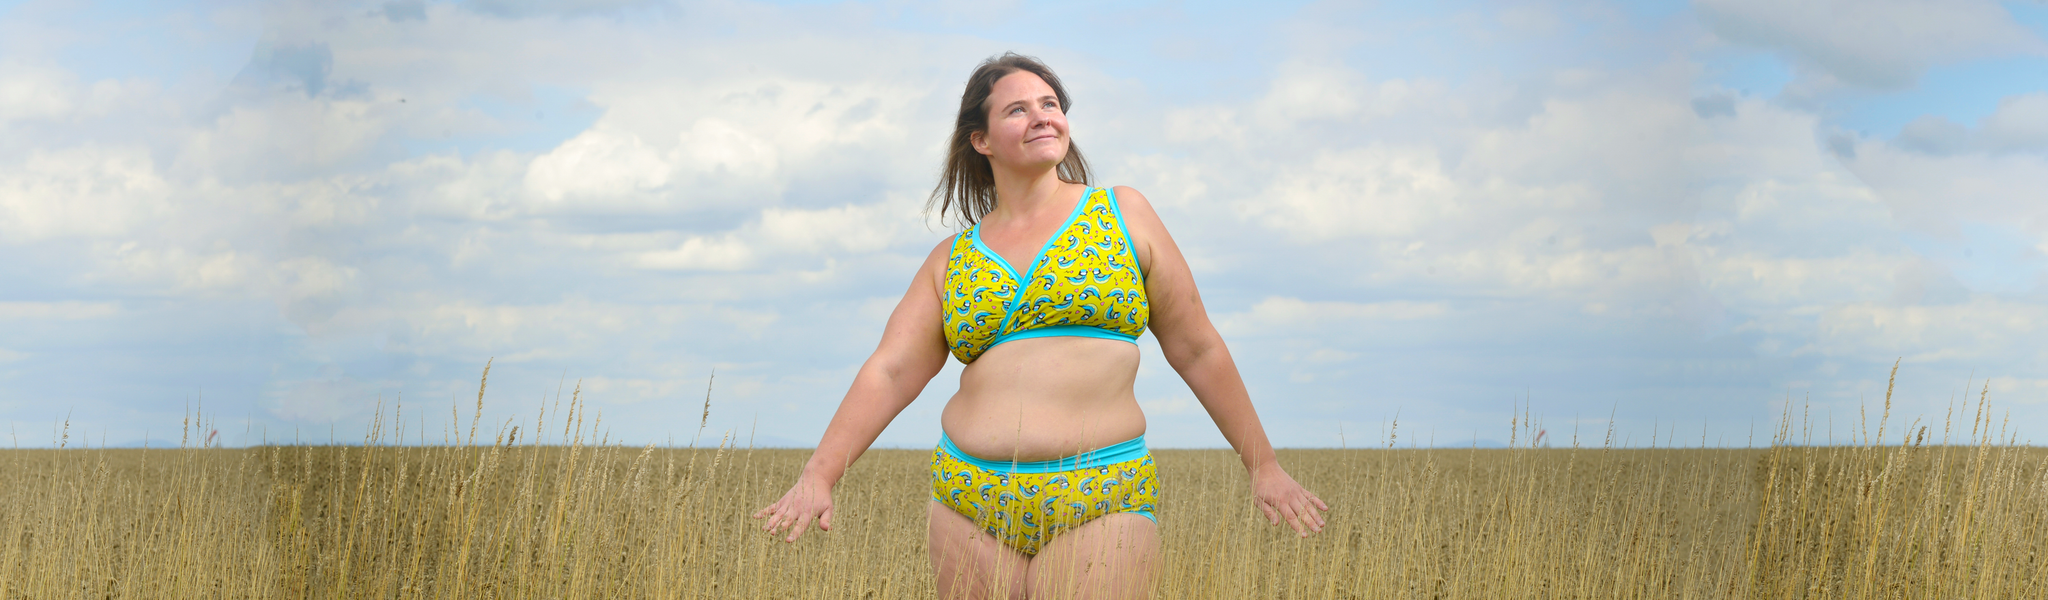 A woman stands in a field of wheat with her arms out and the sky is blue. She looks content. She is wearing a set of Molke underwear in the Blue Tits fabric. It is yellow with illustrated birds on it an a light blue trim.